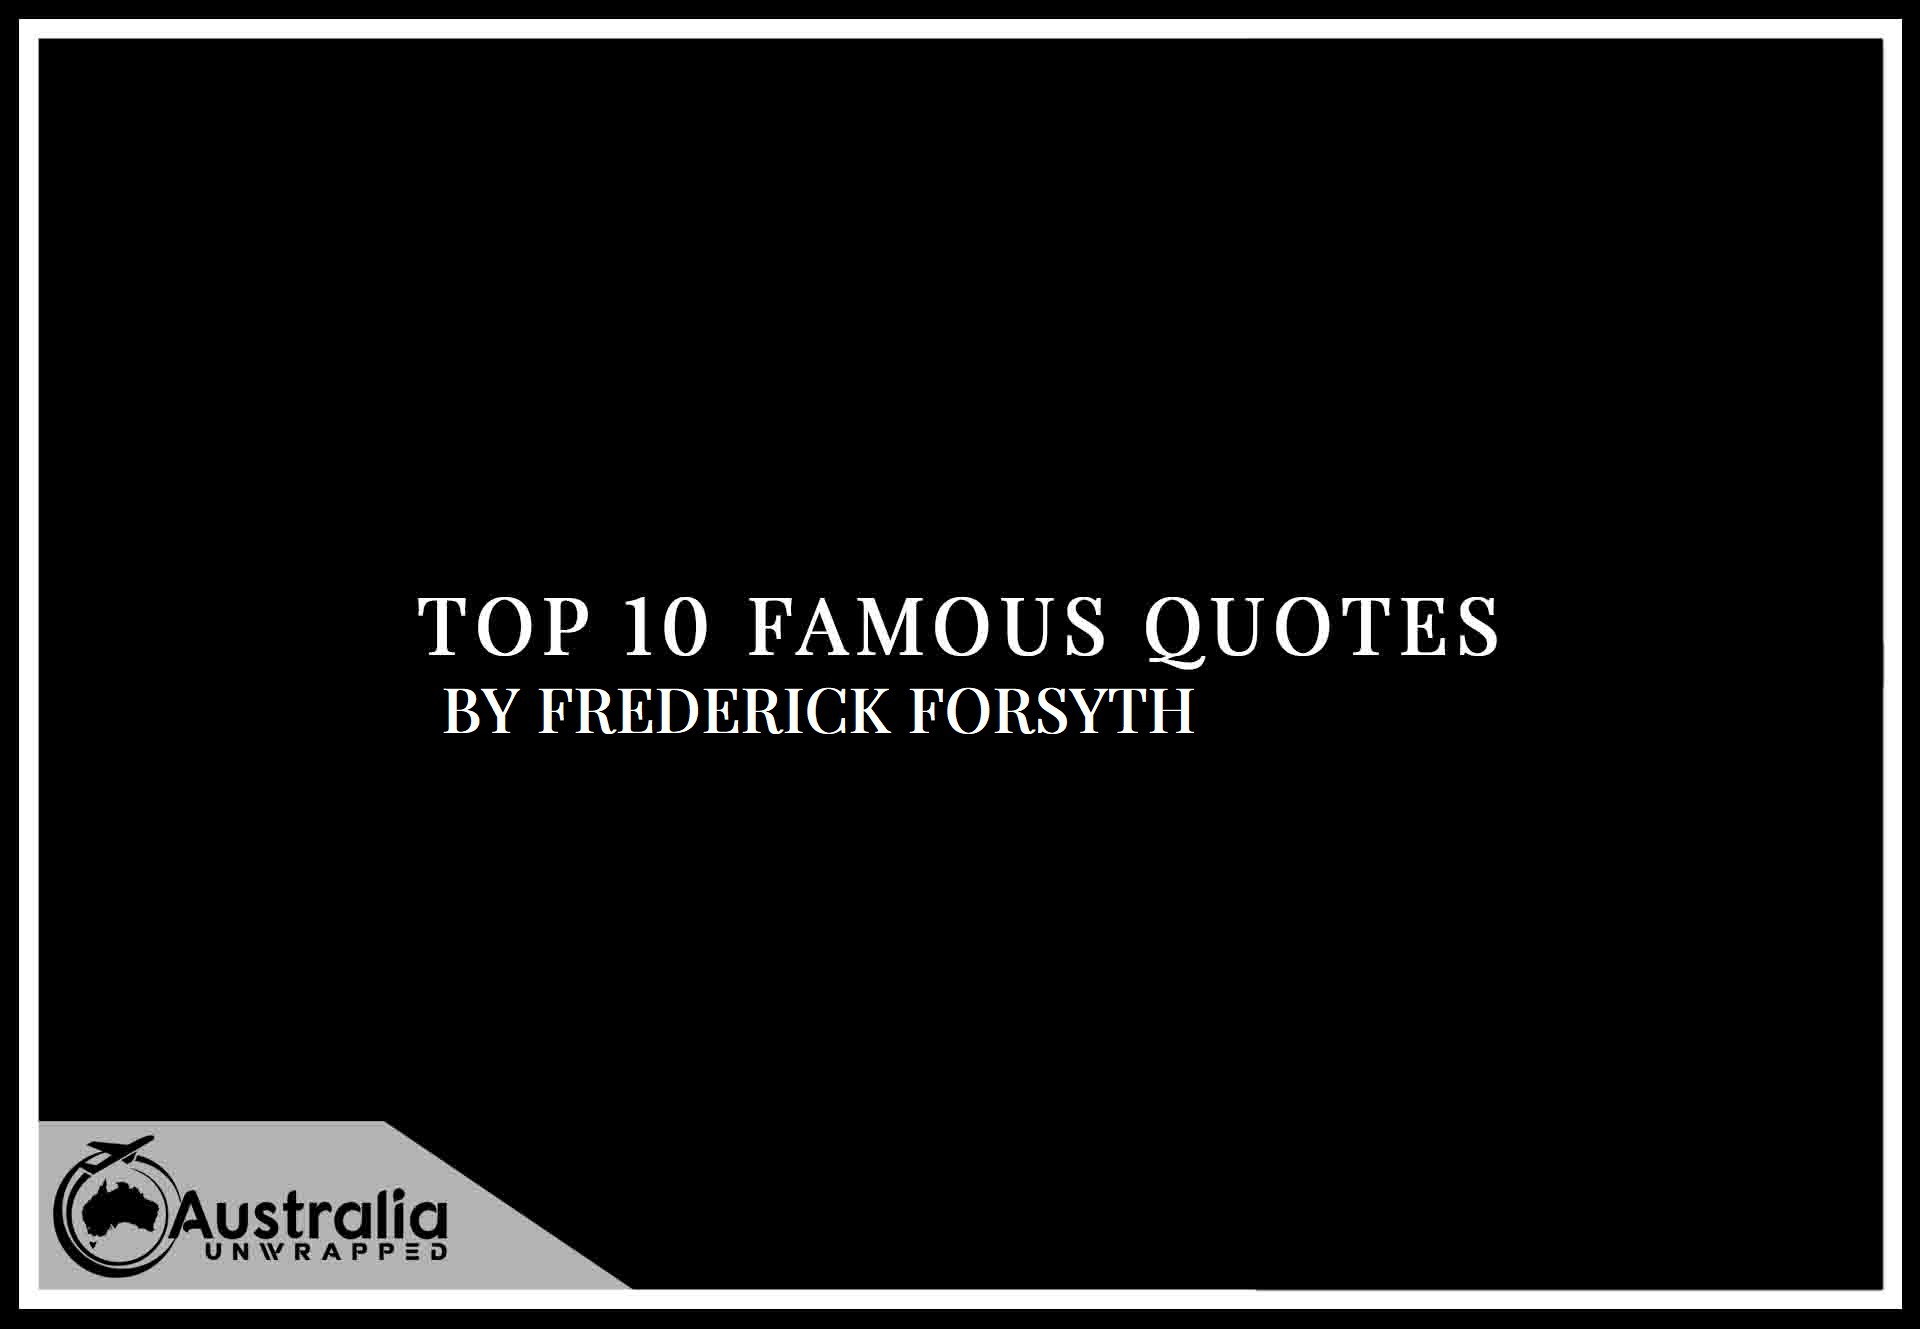 Top 10 Famous Quotes by Author Frederick Forsyth